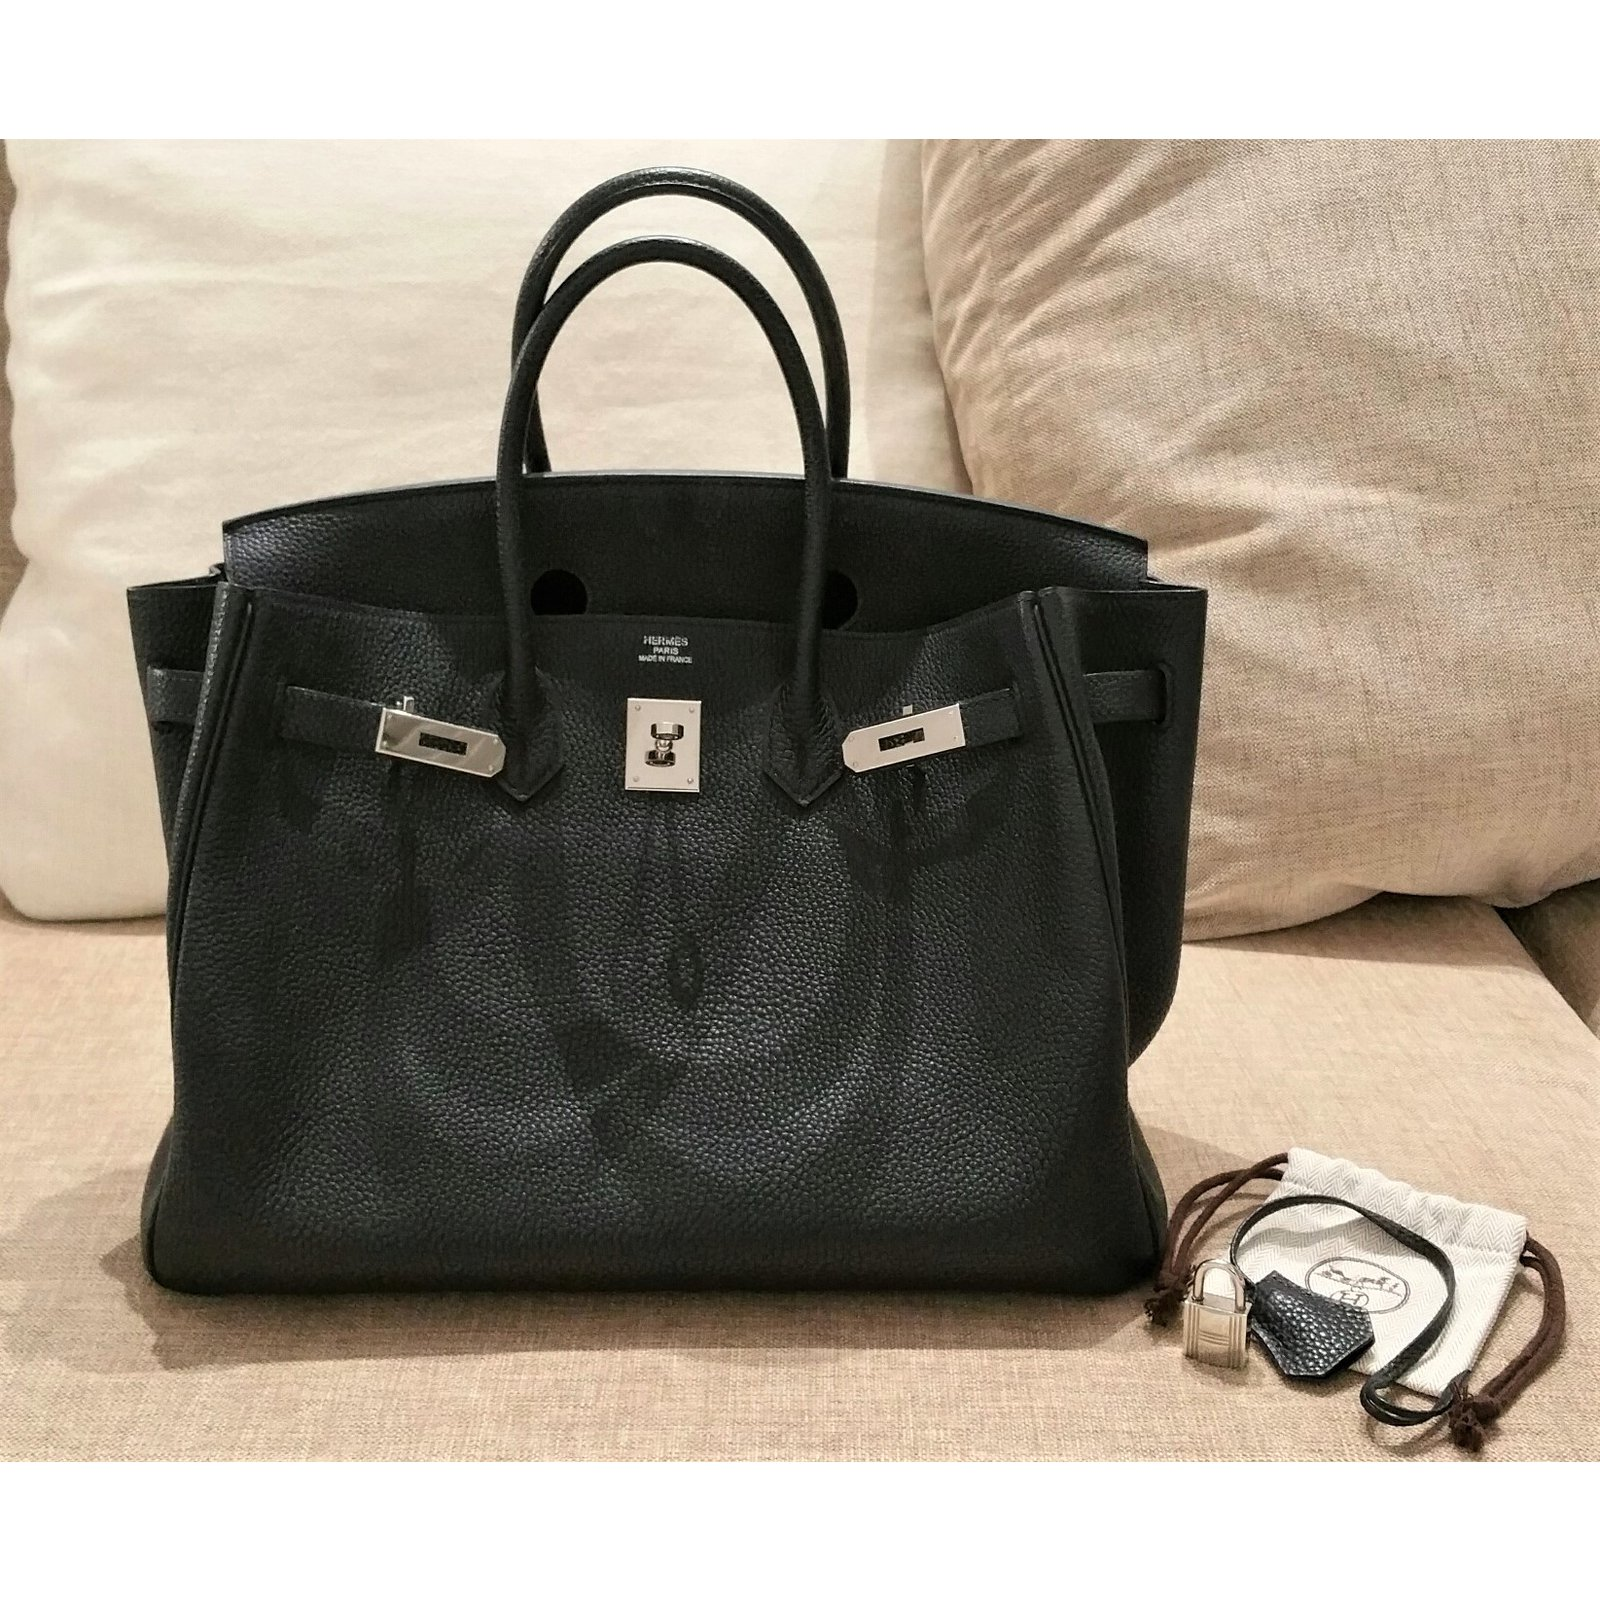 2197faf47c Hermès Birkin 35 Black Togo Leather PHW Handbags Leather Black ref ...